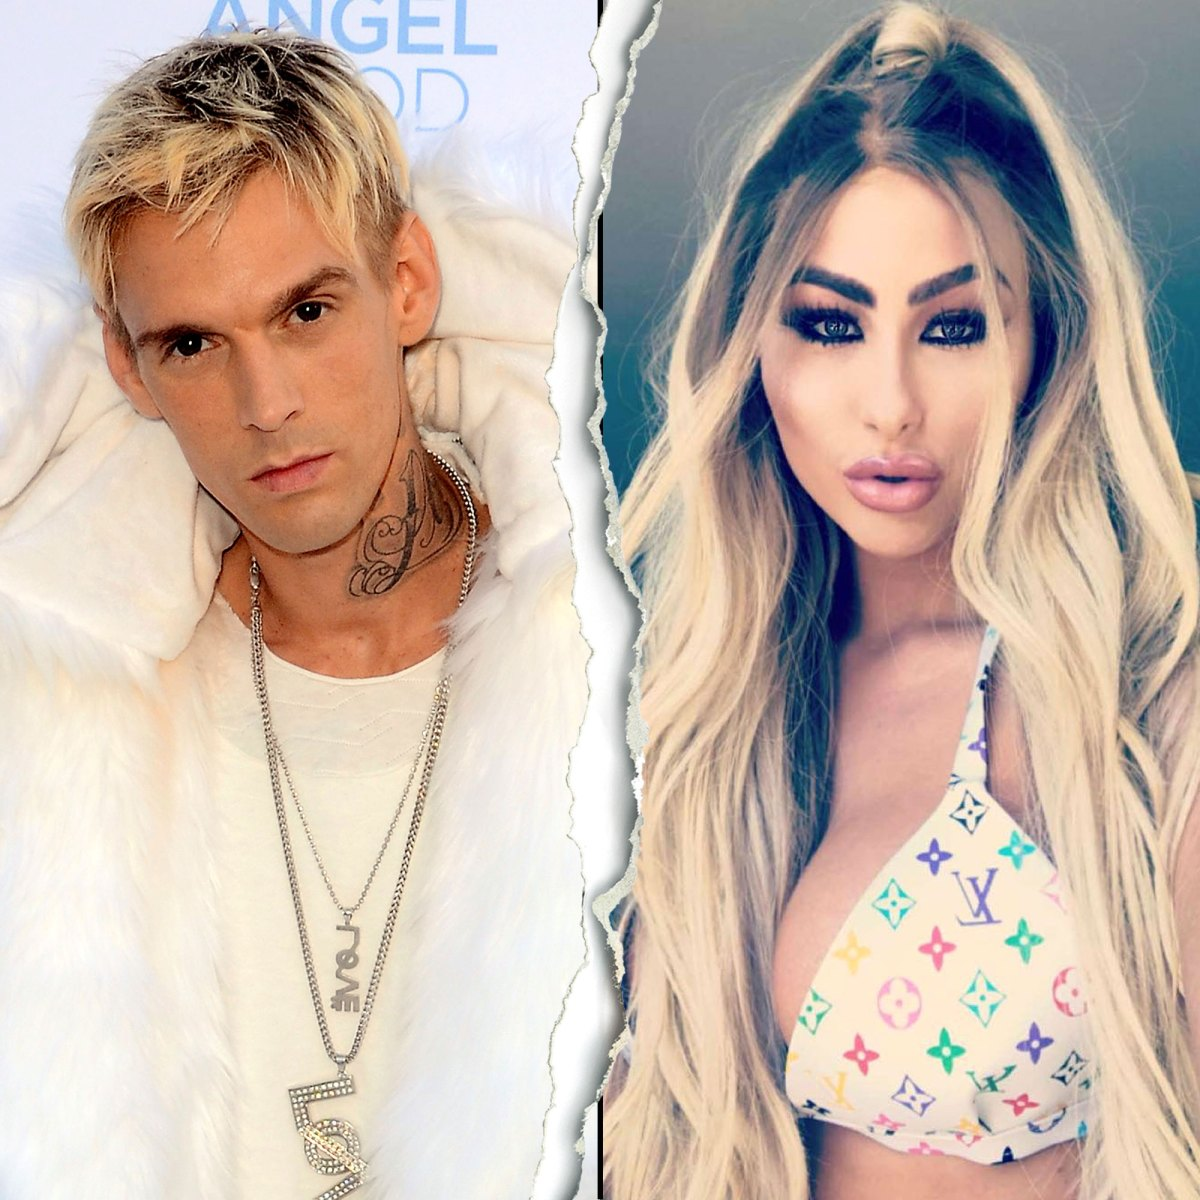 Celebrity Splits Of 2020 Stars Who Broke Up This Year The portuguese institute of oncology said in a statement: celebrity splits of 2020 stars who